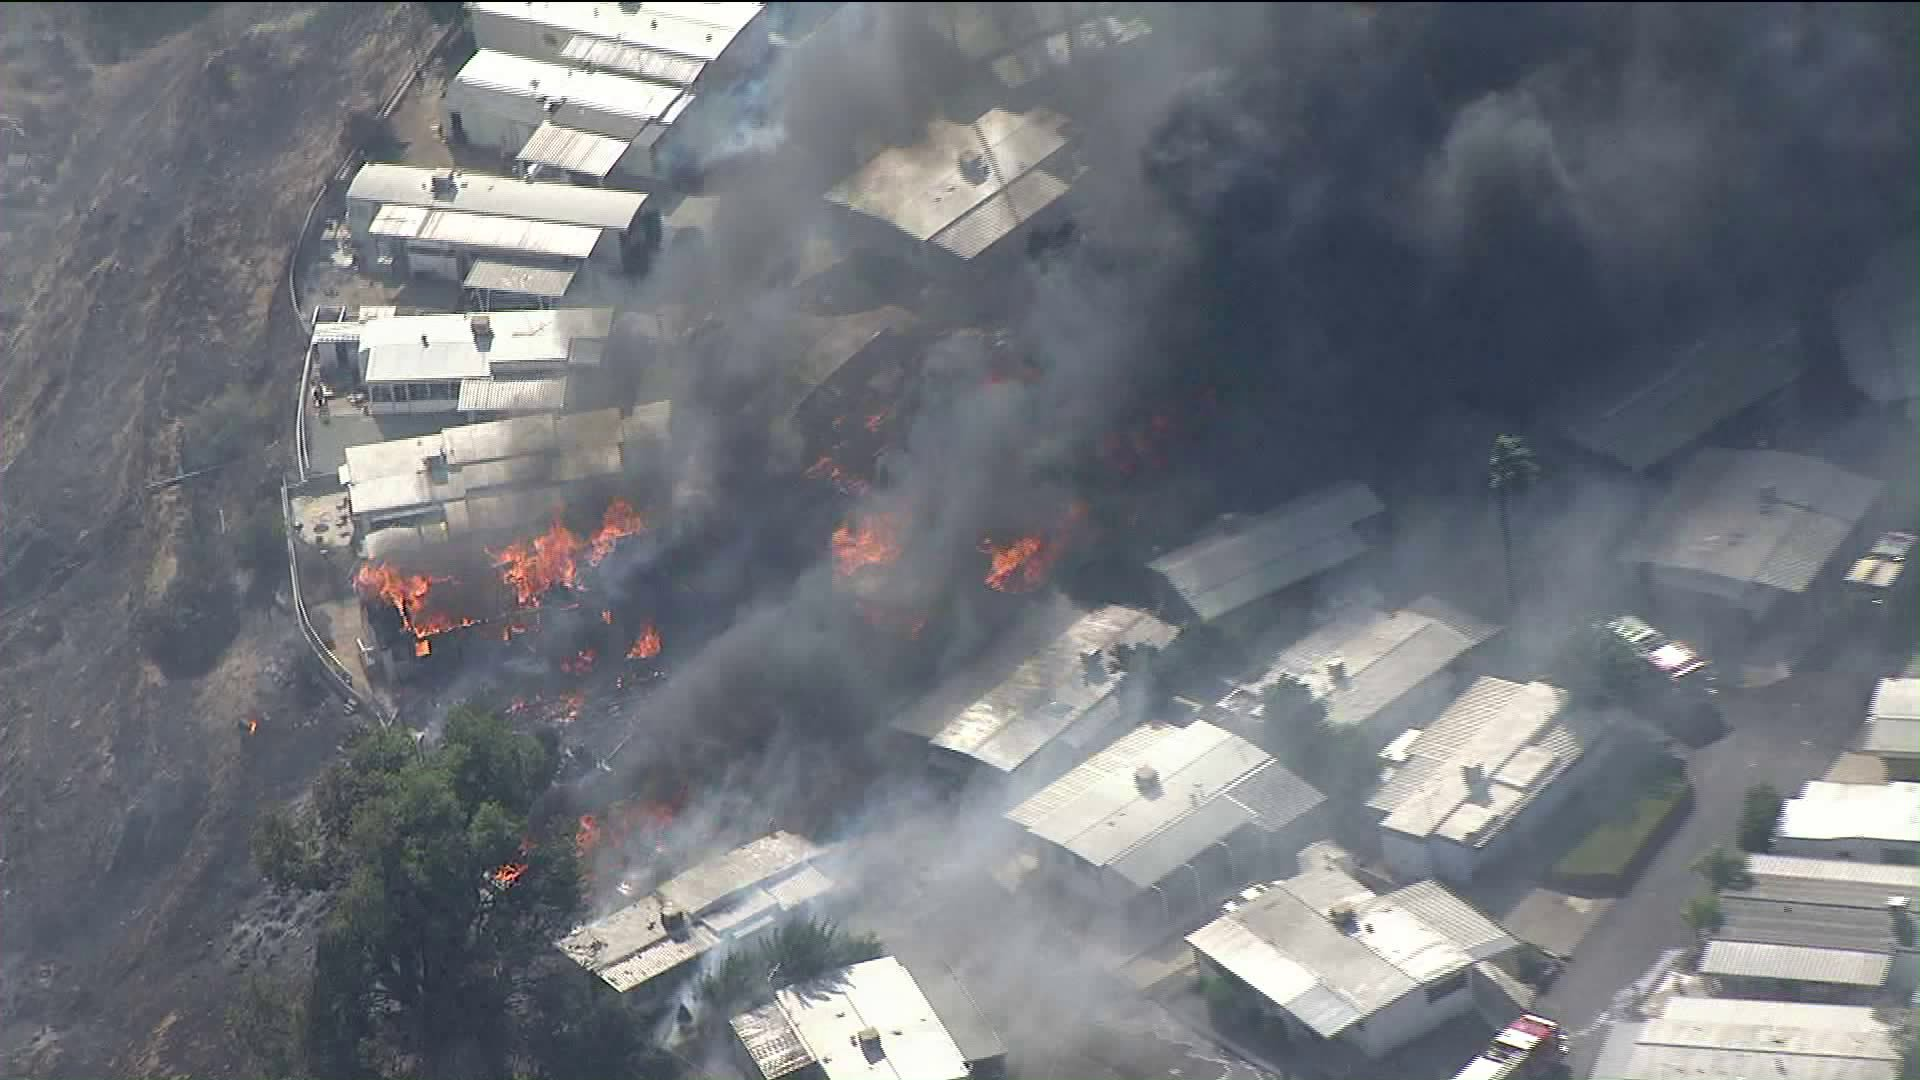 The Sandalwood Fire leaves several homes destroyed at a mobile home park in Calimesa on Oct. 10, 2019. (Credit: KTLA)